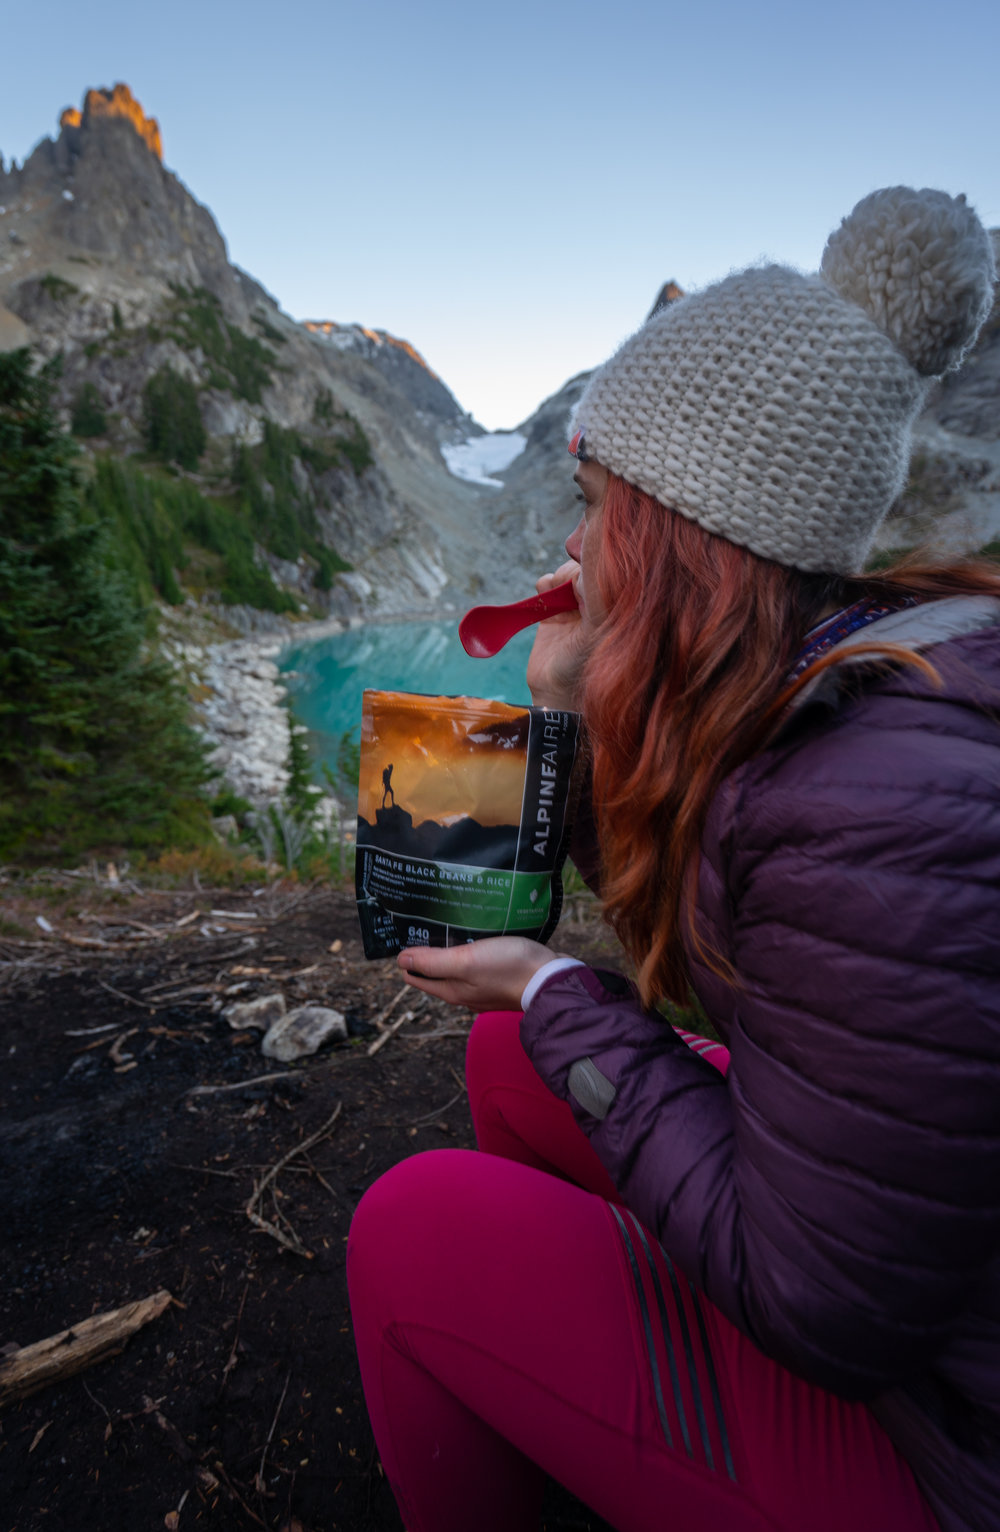 Backpacking food that nourishes you, and keeps your stomach from exploding = a win-win.